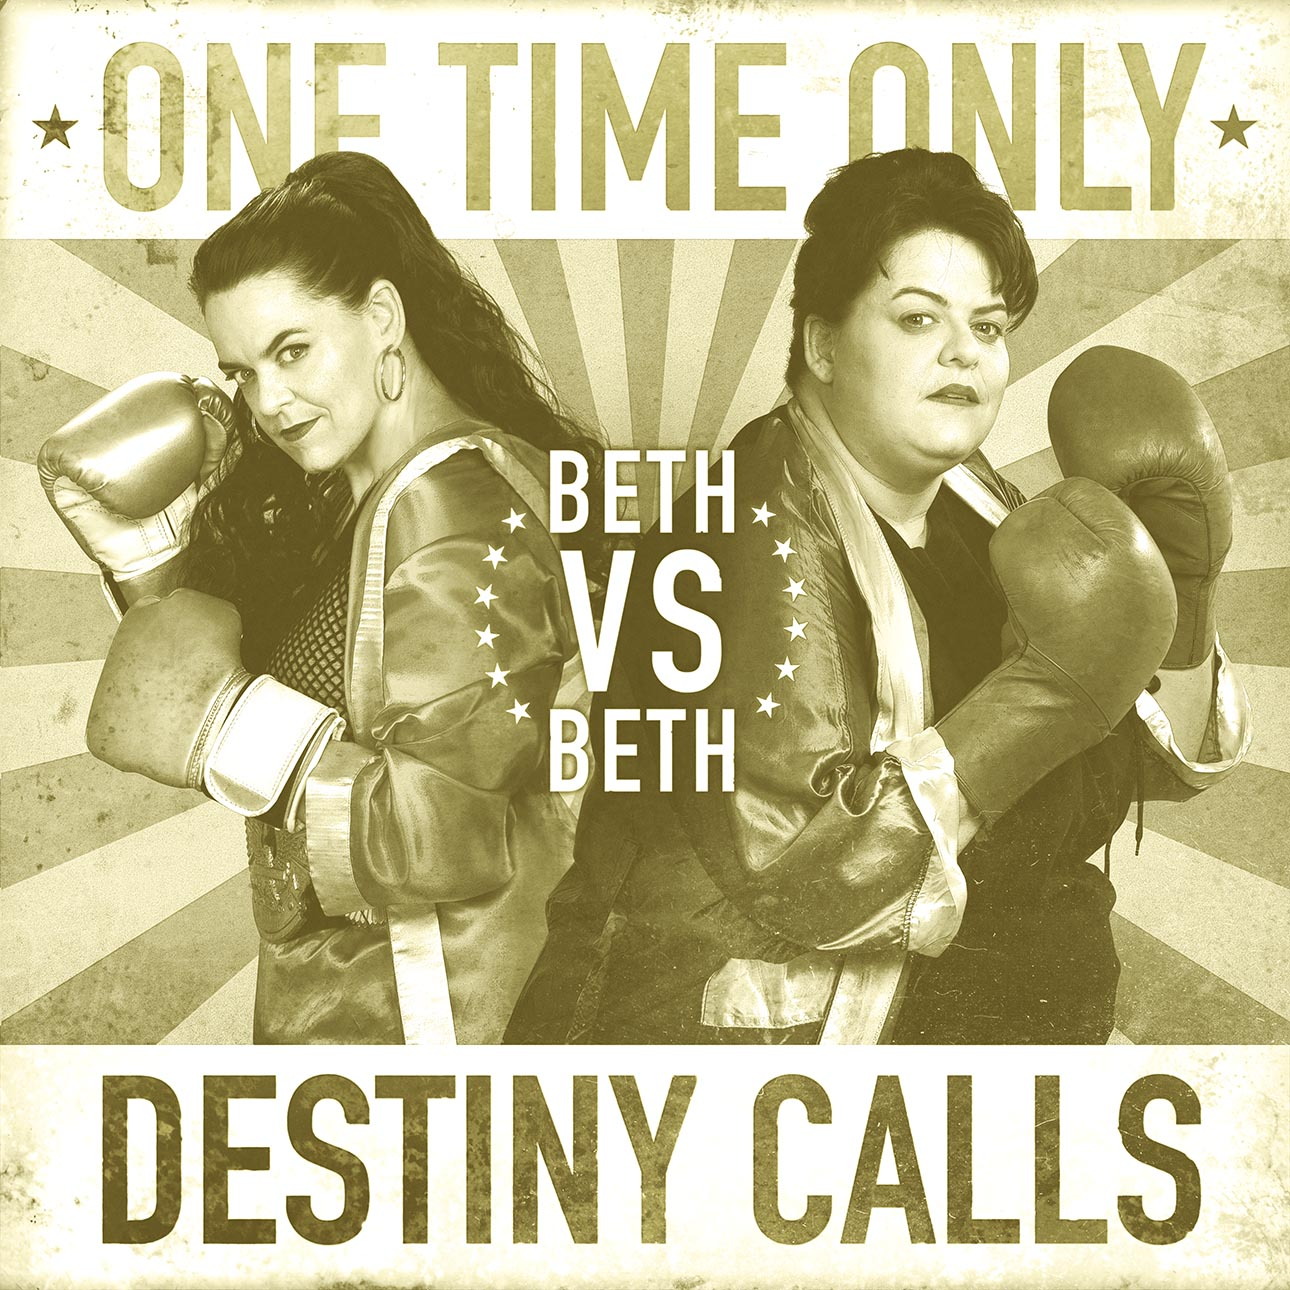 0010_Boxing-Poster-Beth